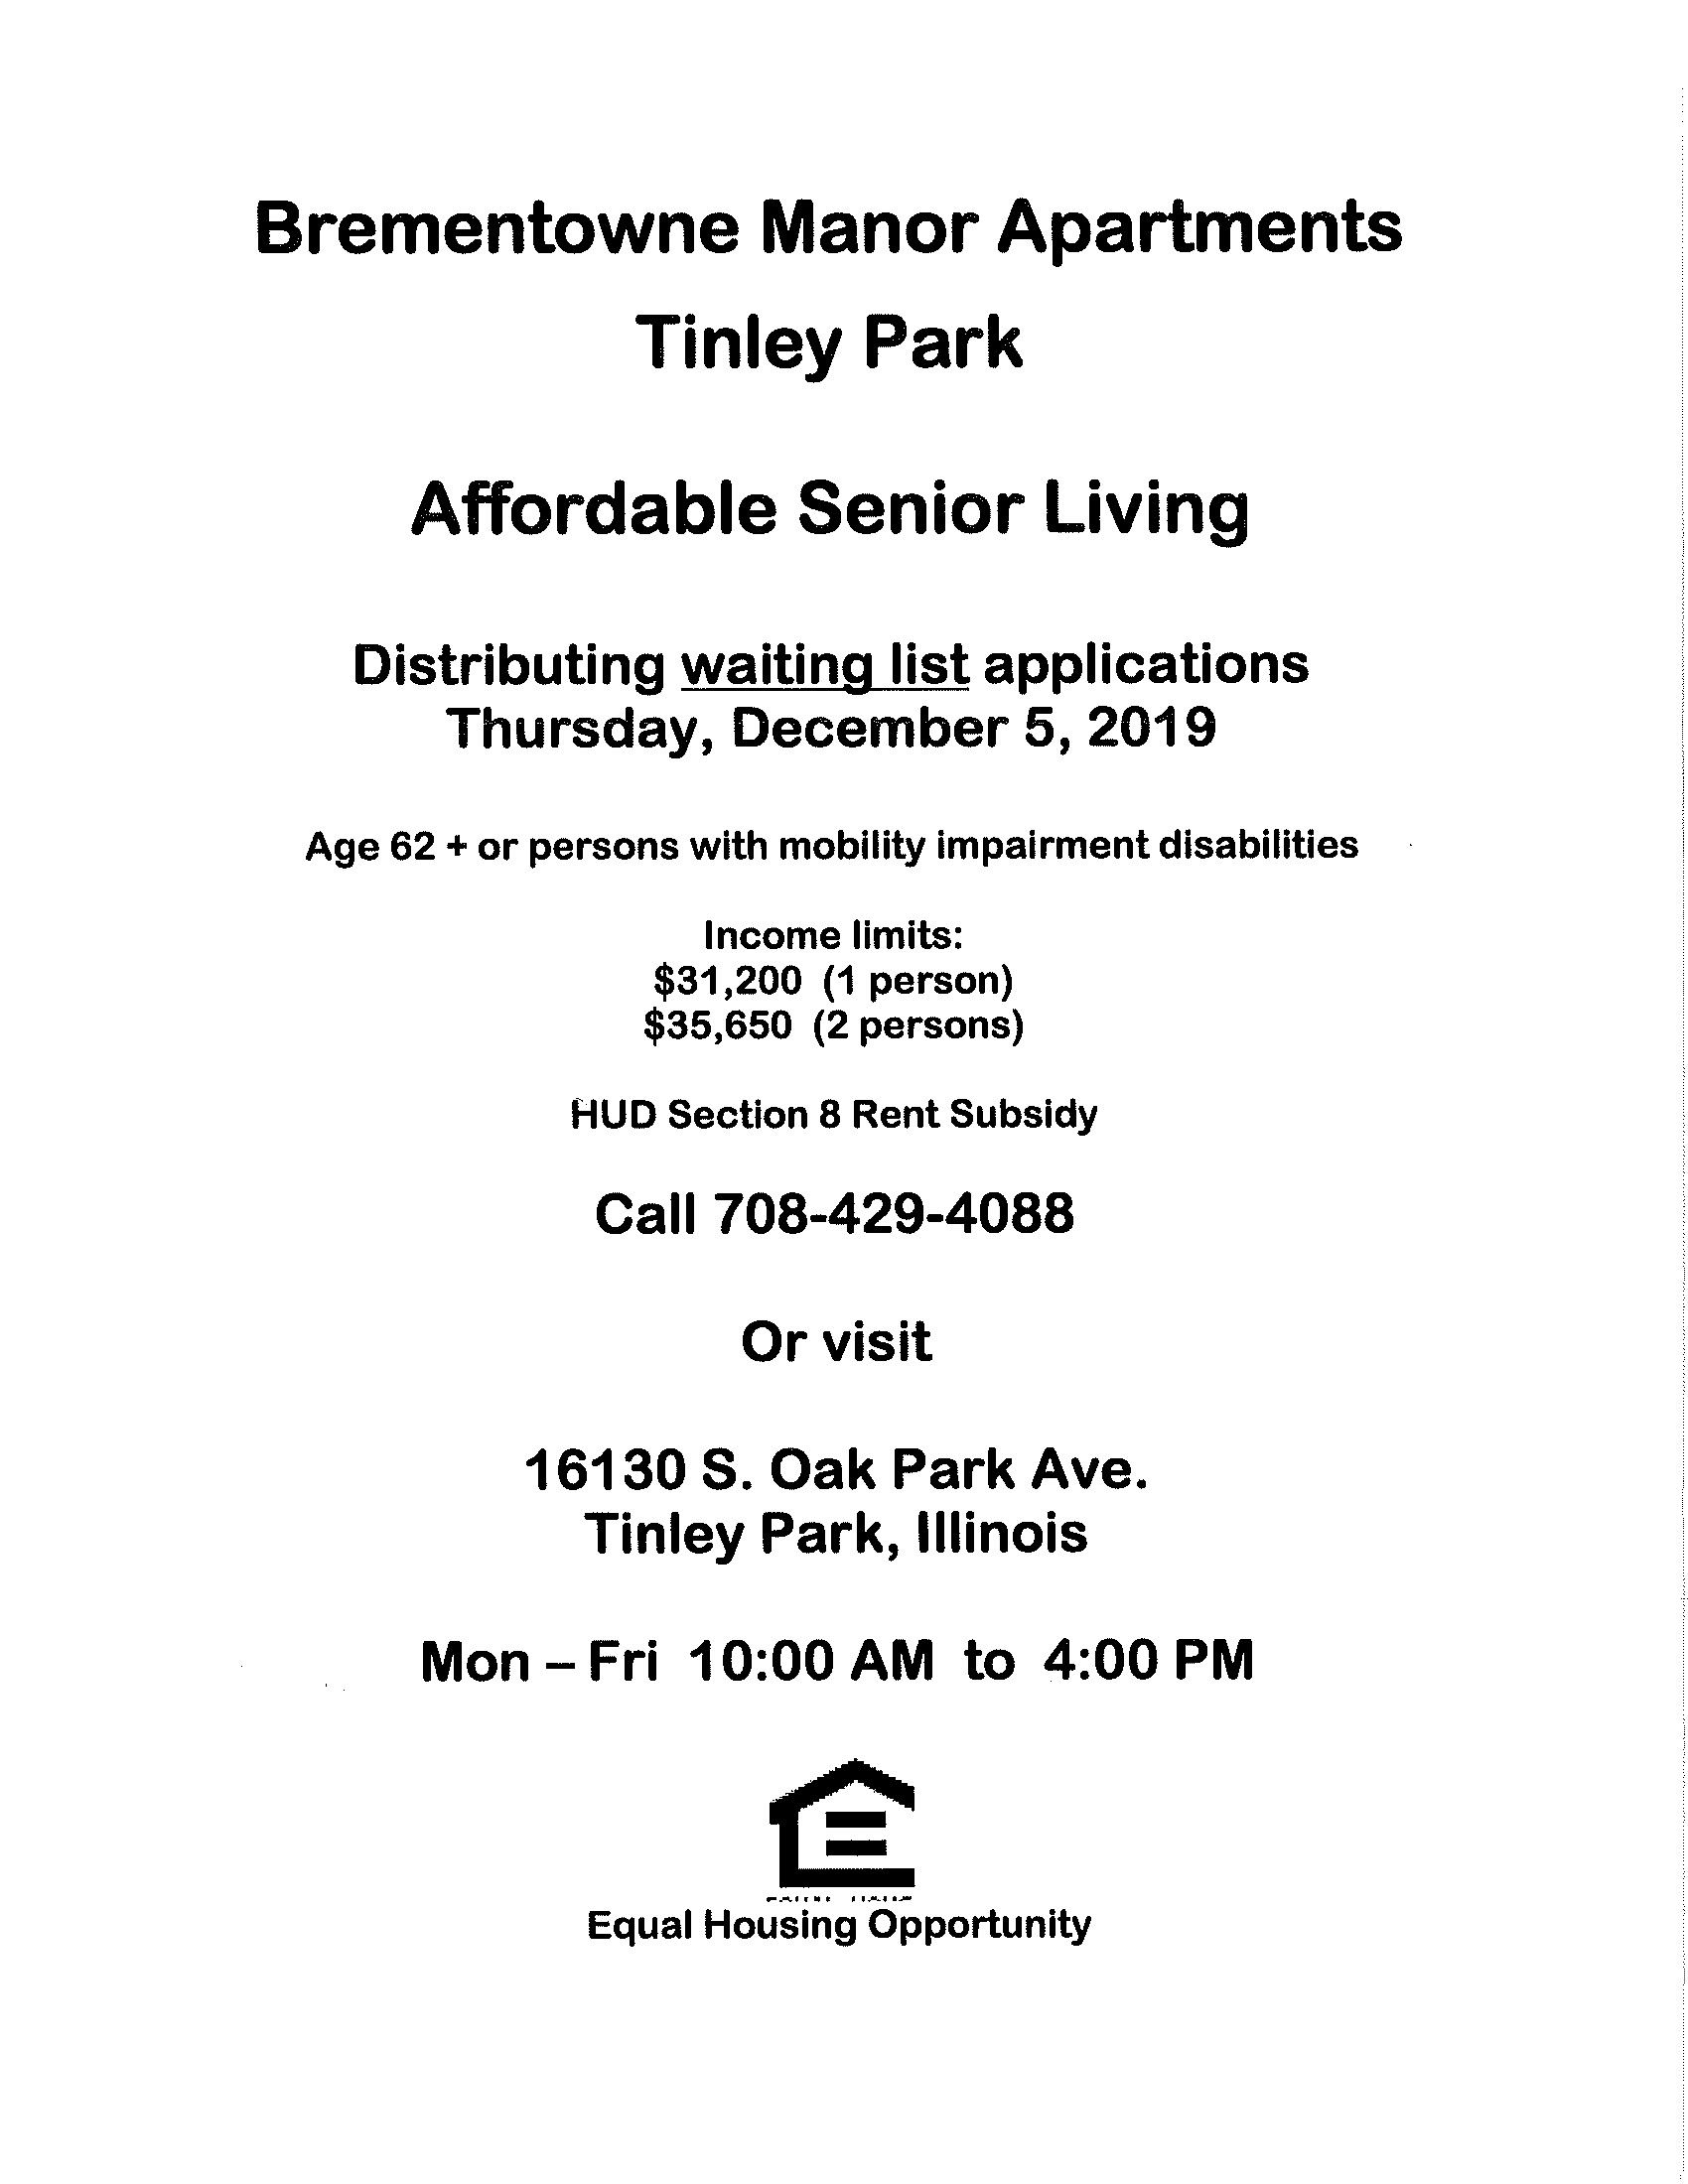 Brementowne Manor Senior Apartments Tinley Park